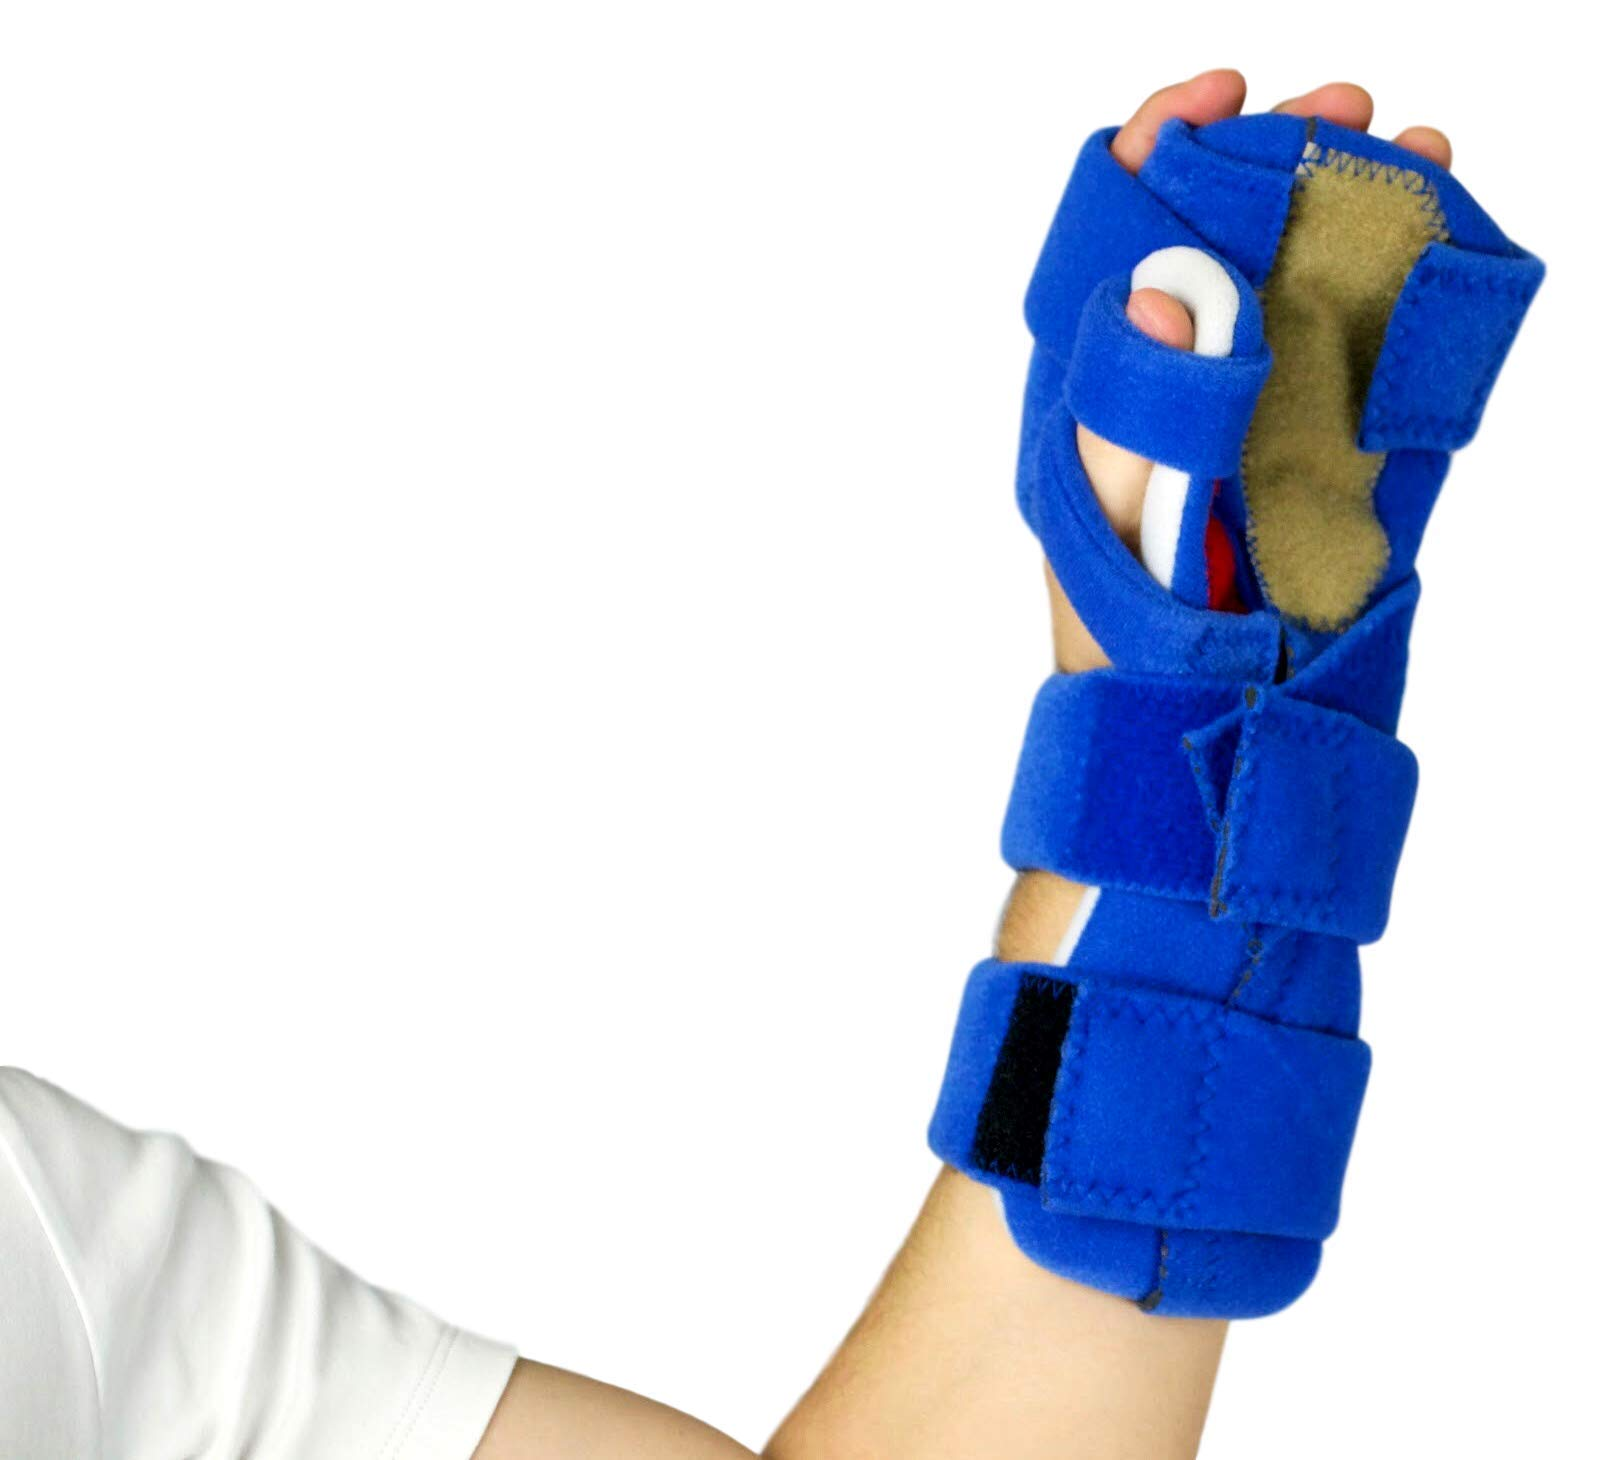 Restorative Medical Hand Brace | Resting Hand & Wrist Night Splint - Corrective, Supportive Brace for Comfort & Pain Relief by Restorative Medical (Image #4)